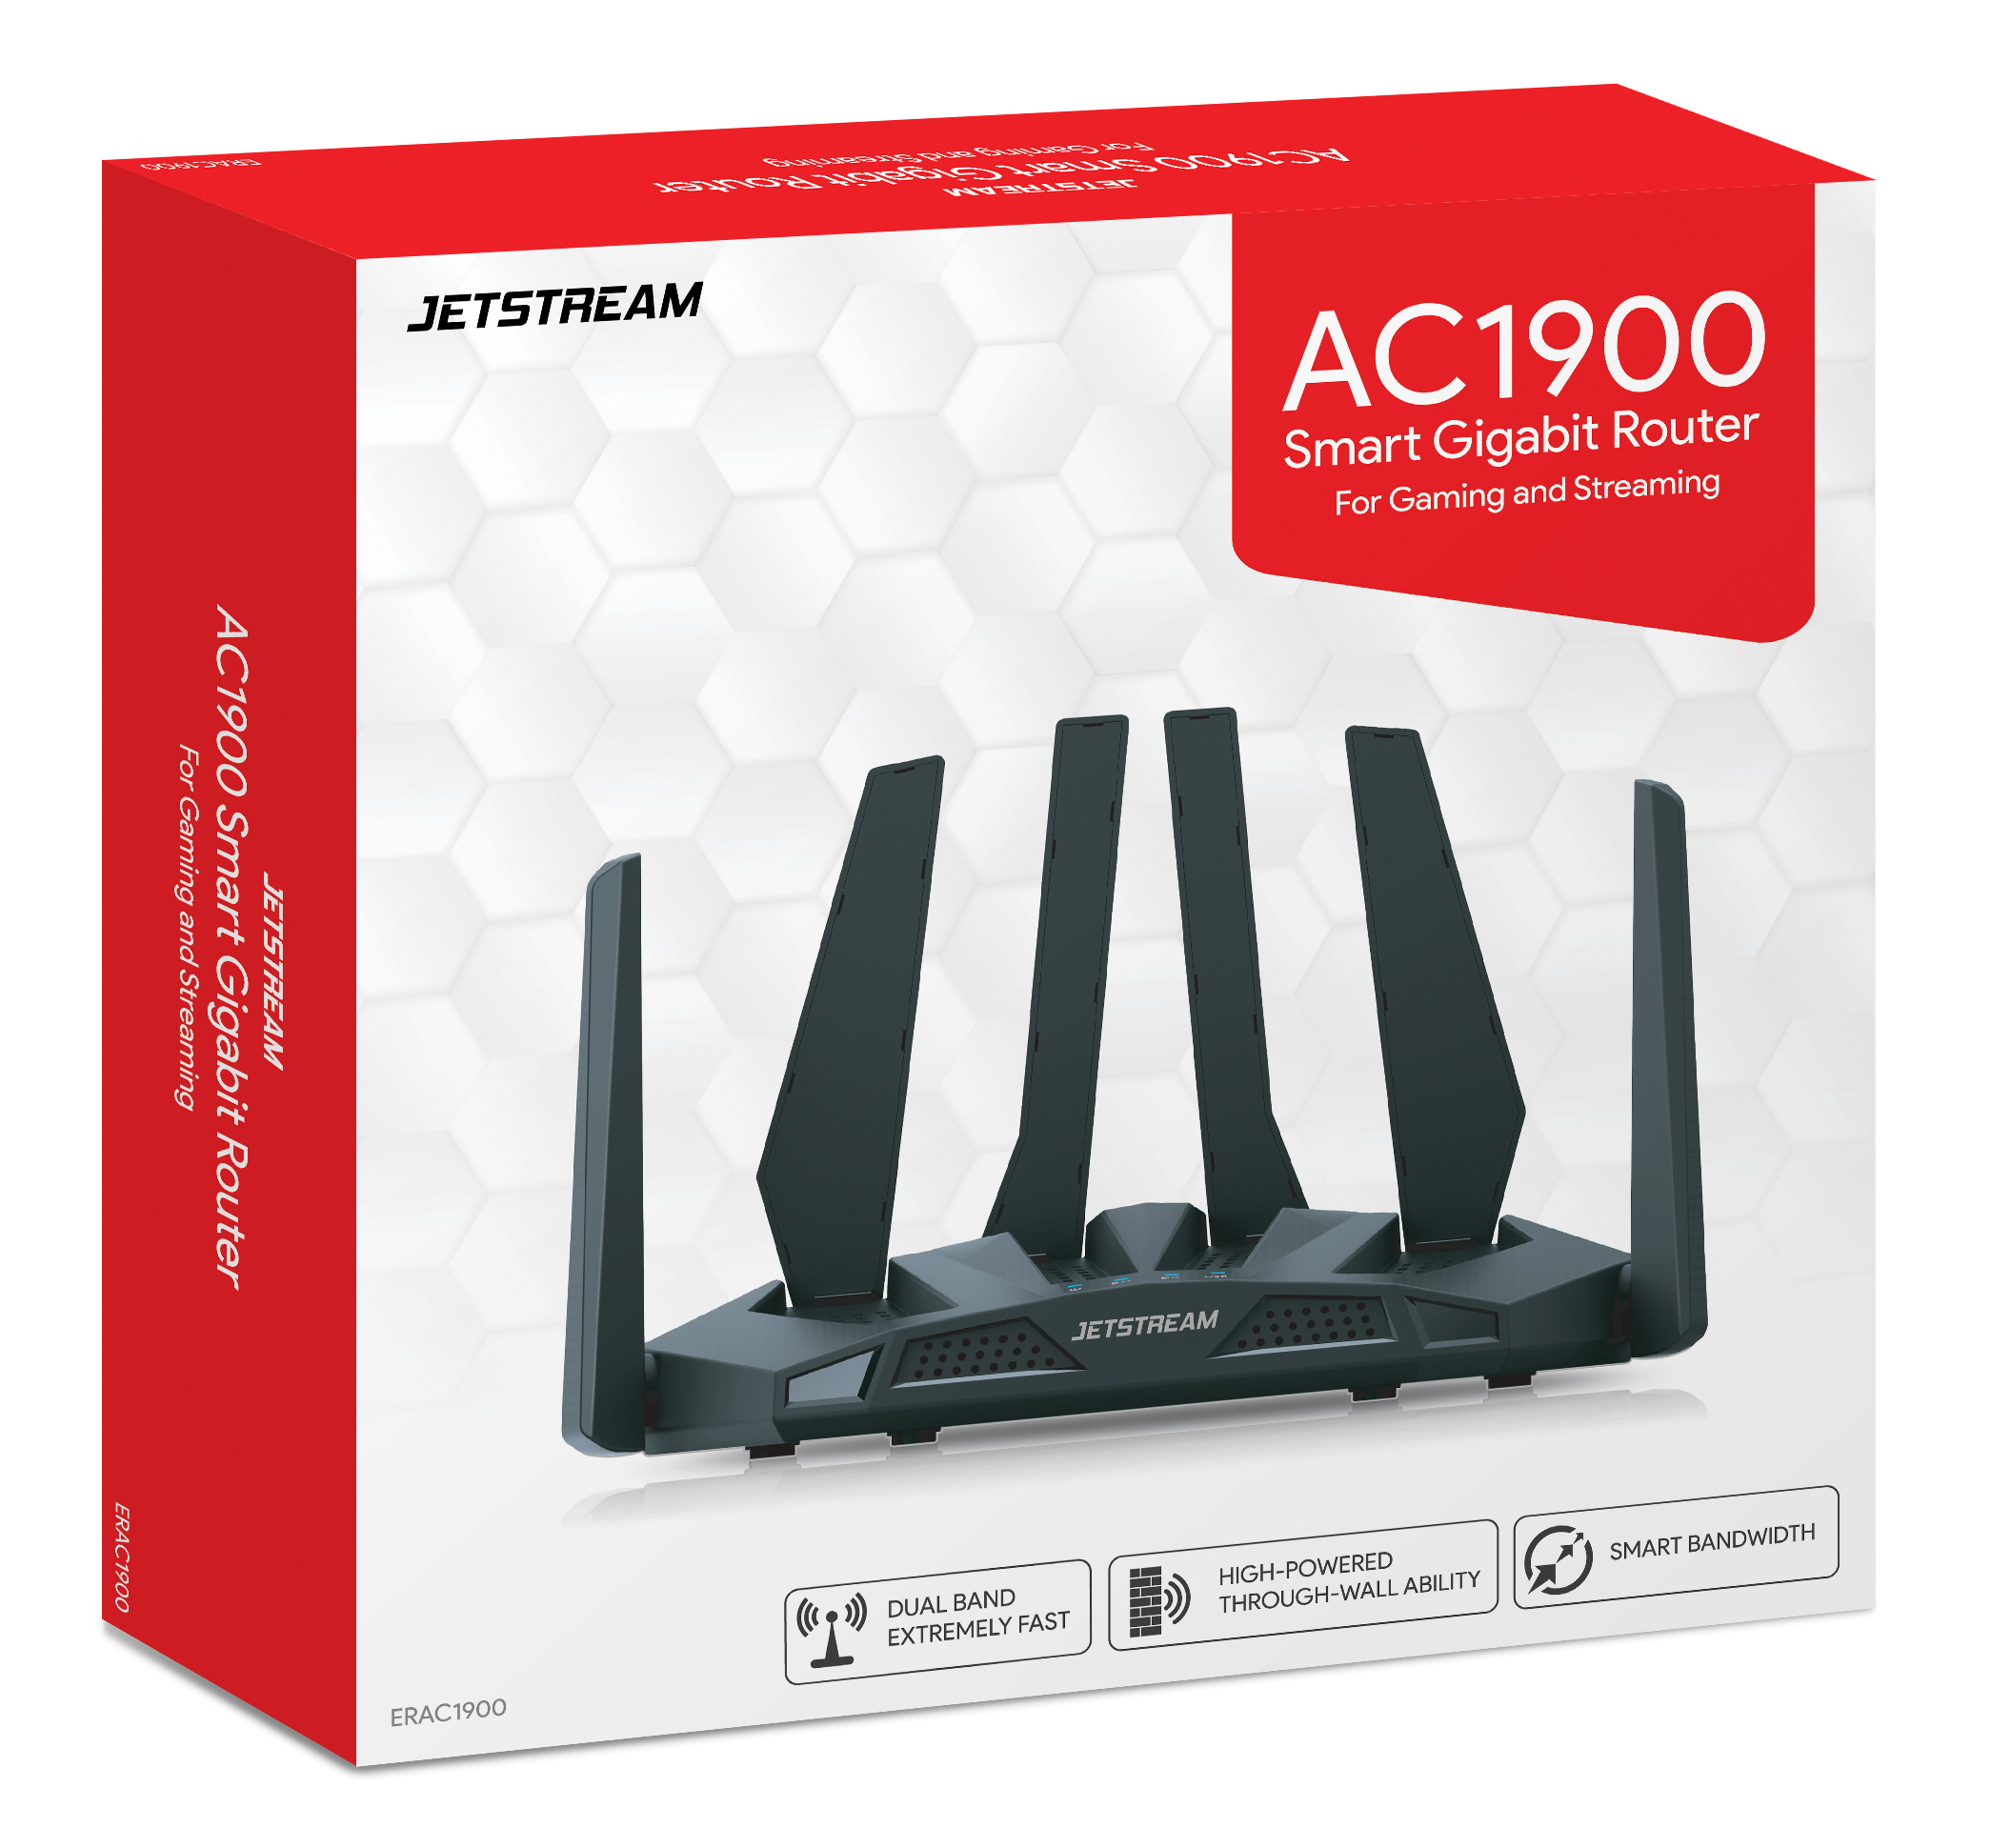 Jetstream AC1900 Dual Band WiFi Gaming Router, 801.11a/b/g/n/ac - Walmart Exclusive!